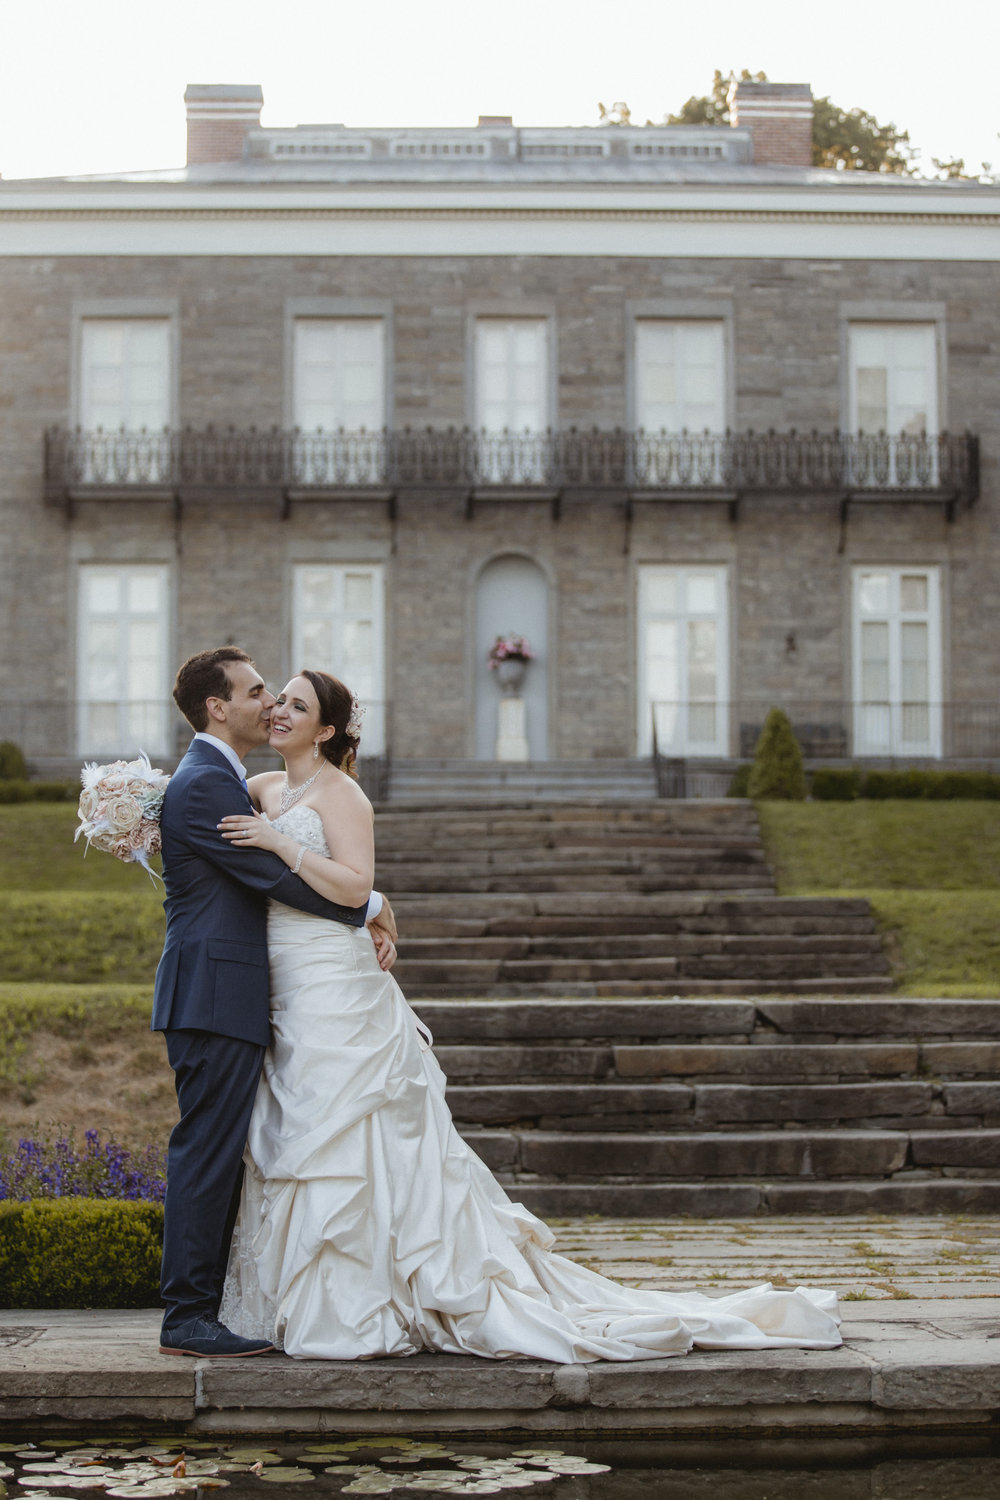 Groom kisses bride on the cheek | Bartow-Pell Mansion wedding | Manhattan wedding | Bronx Wedding | Cathy & Antonello's wedding | Amy Sims Photography